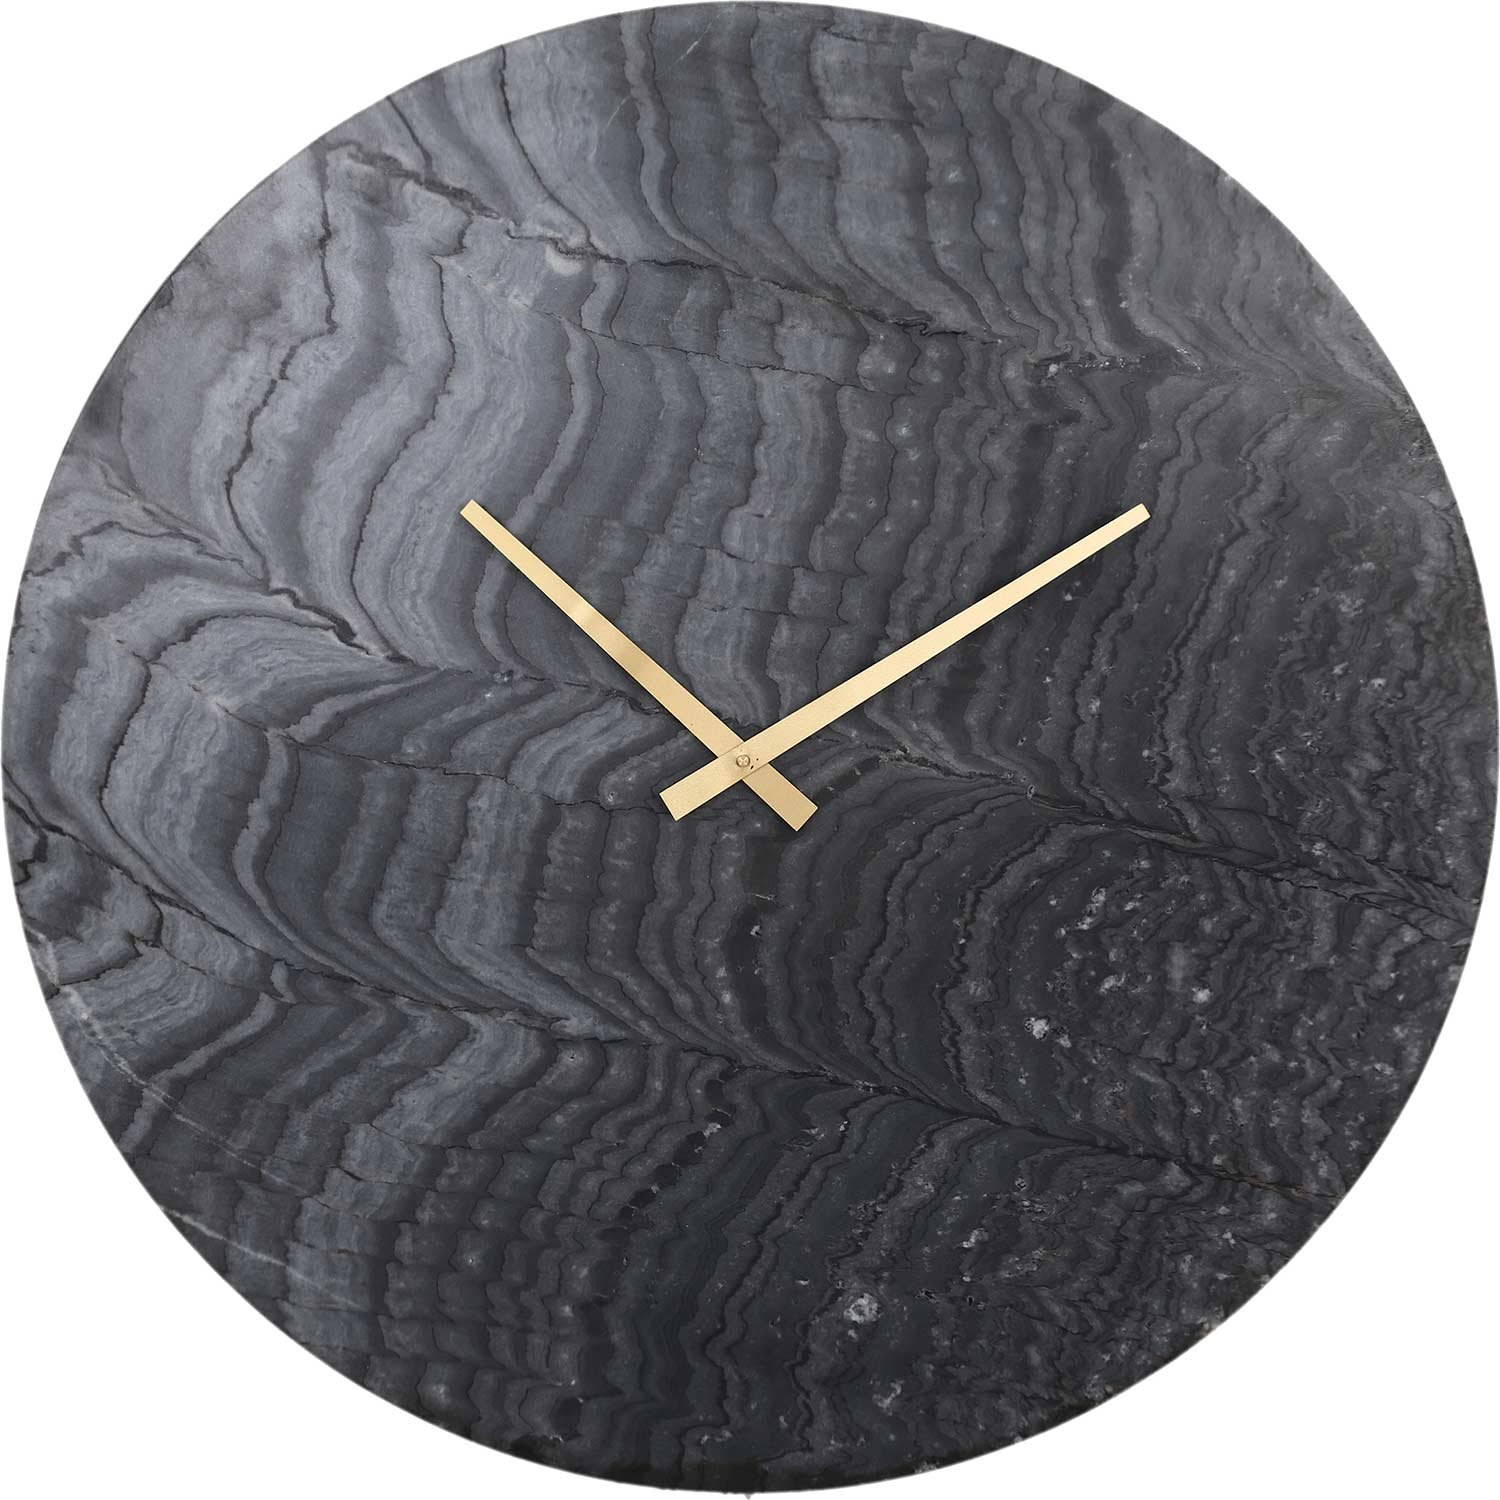 Ren-Wil Devlin Wall Clock - Graymarble/Antique Brass